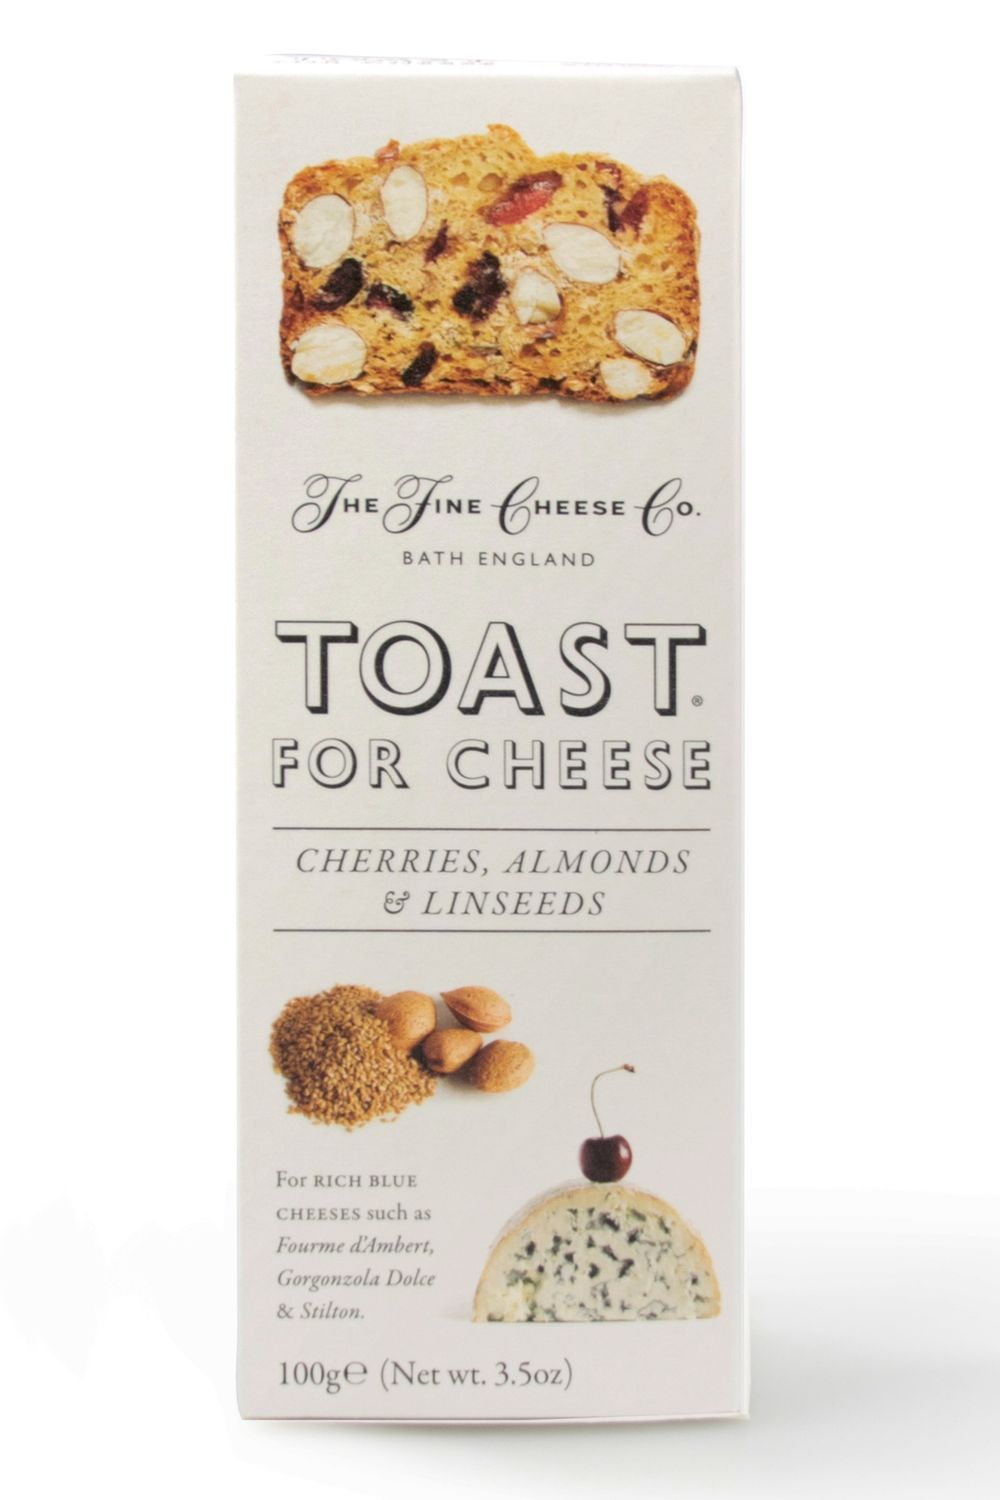 Cherry Almond Toast for Cheese